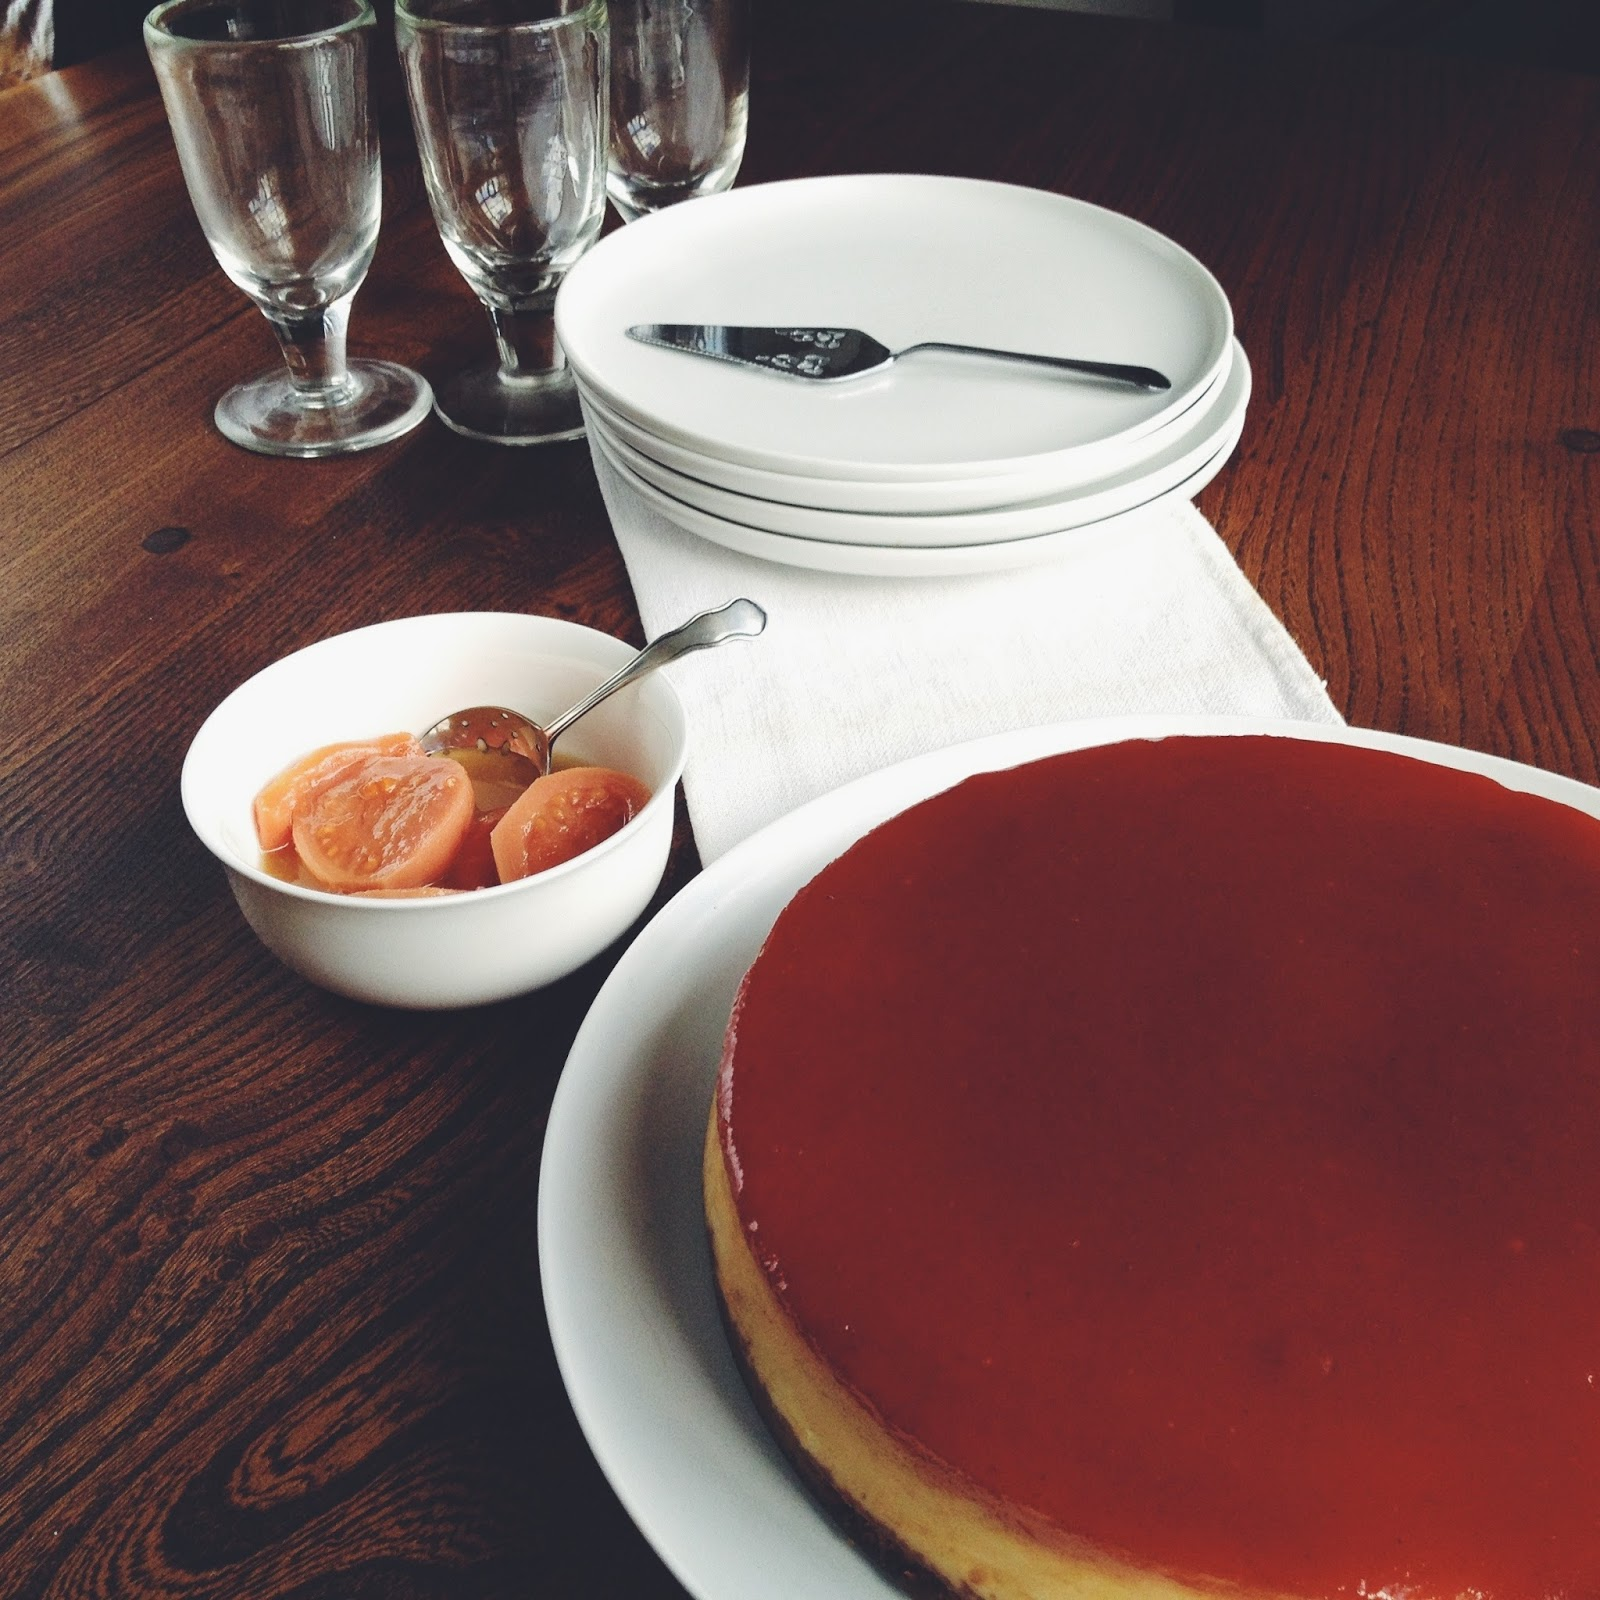 Dinner At Jamie Oliver And The Dreamy Cheesecake By Hot